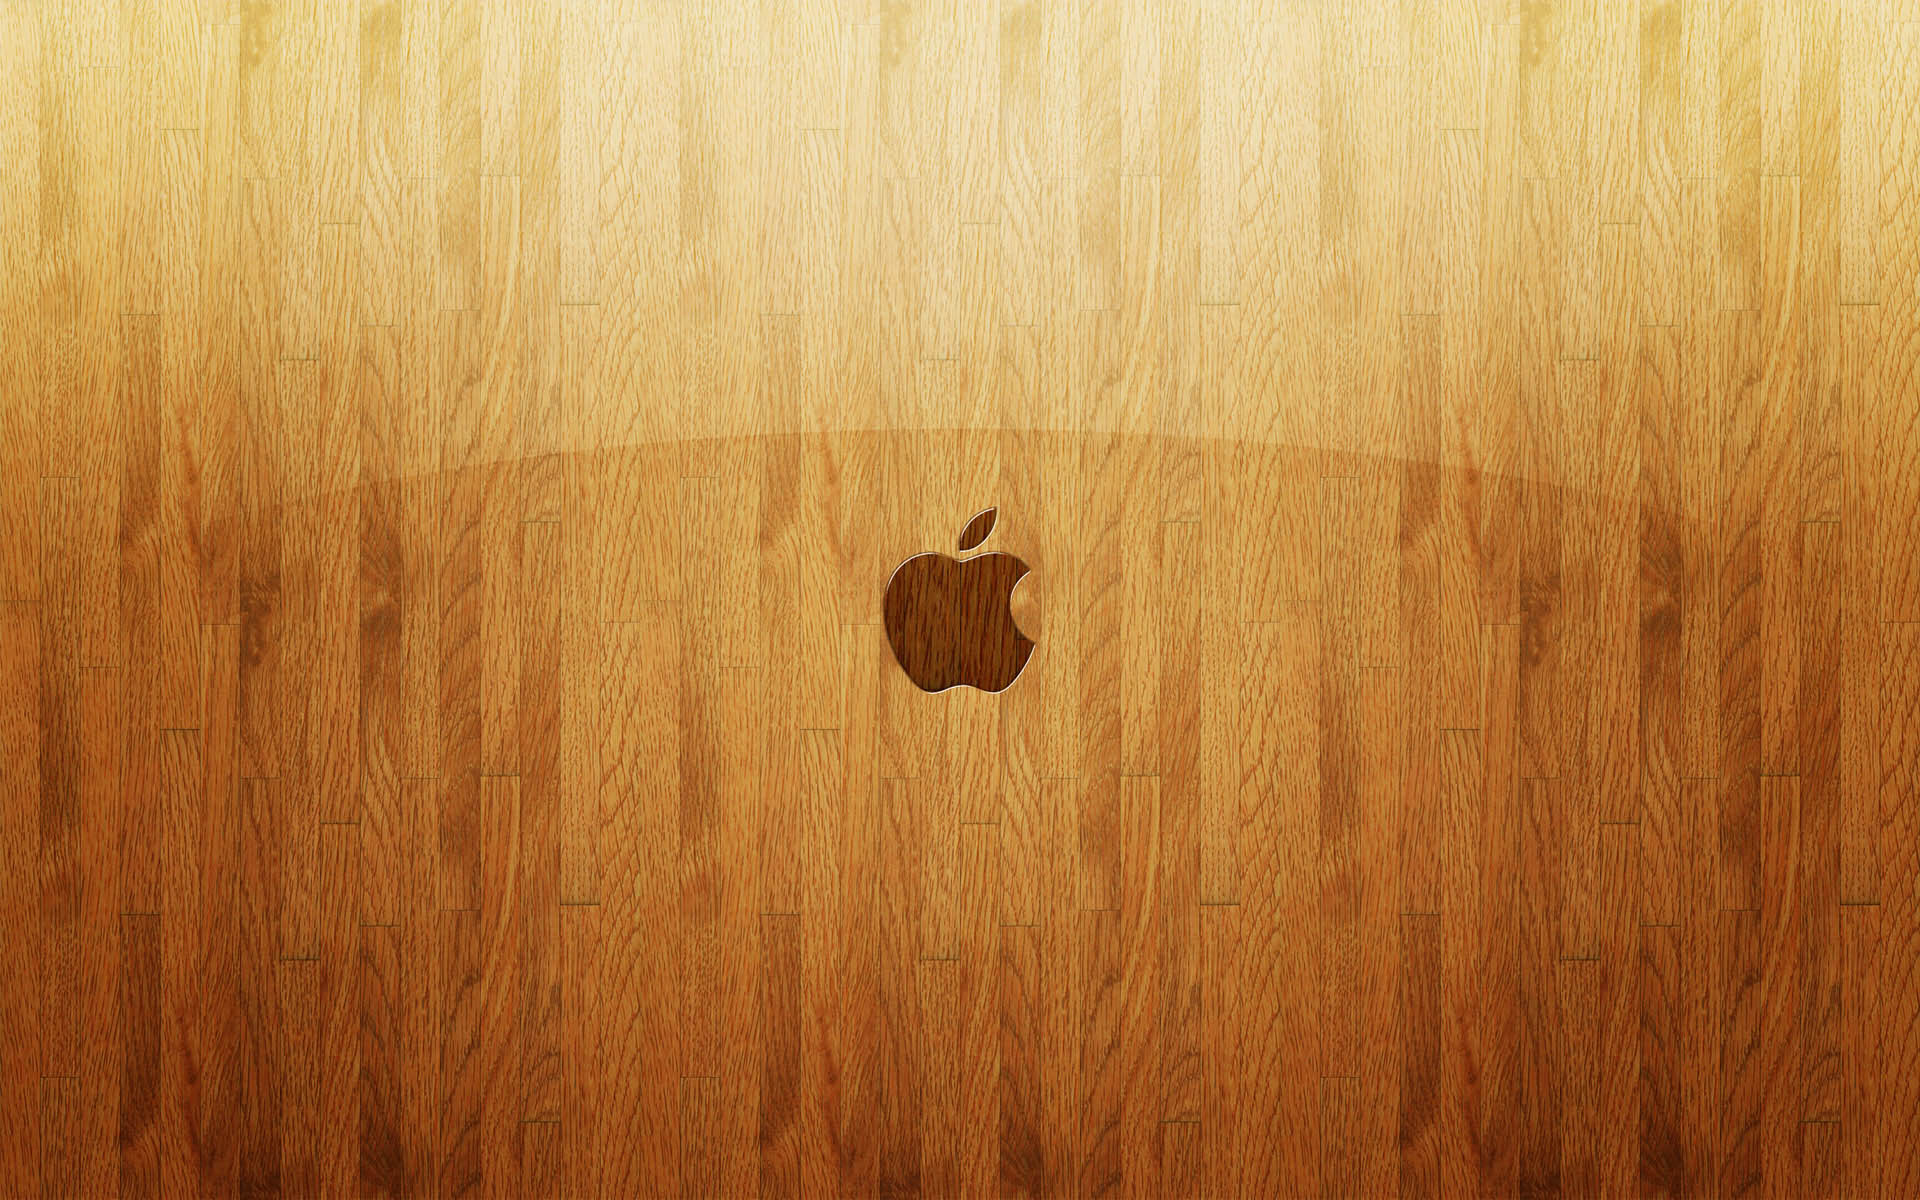 Apple Wooden Glass 72.37 Kb